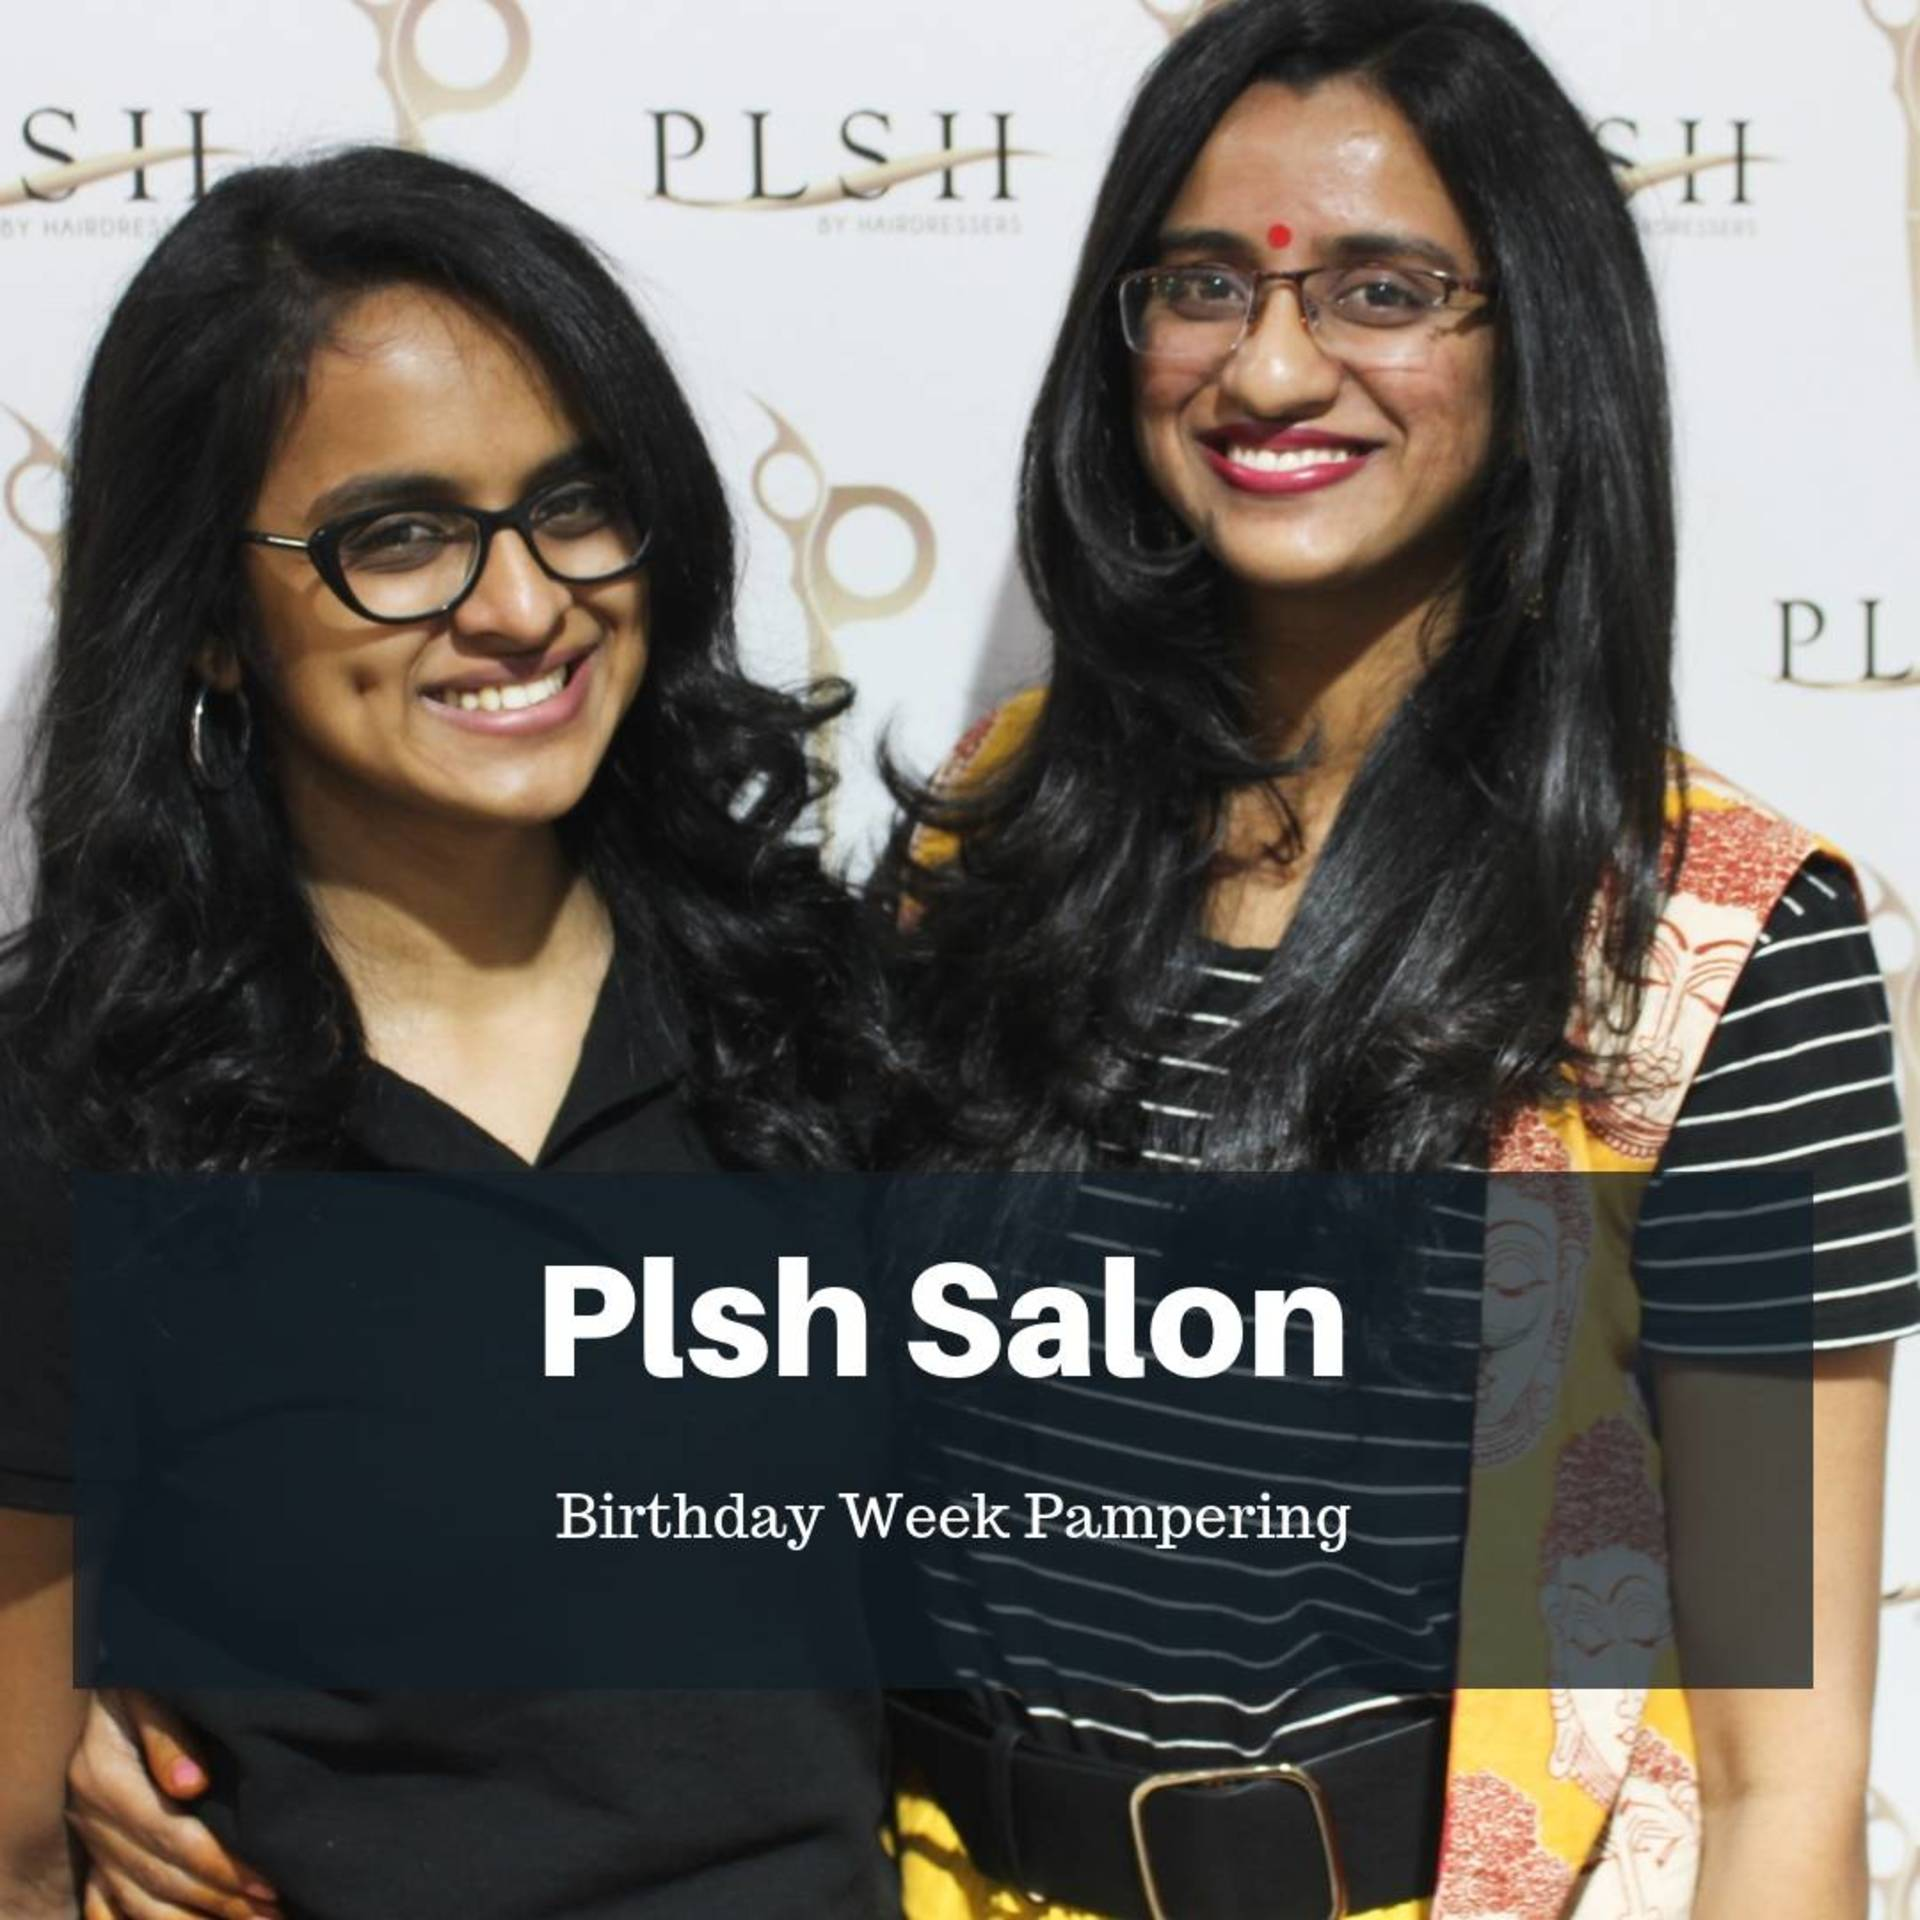 Birthday Pampering at Plsh Salon  image